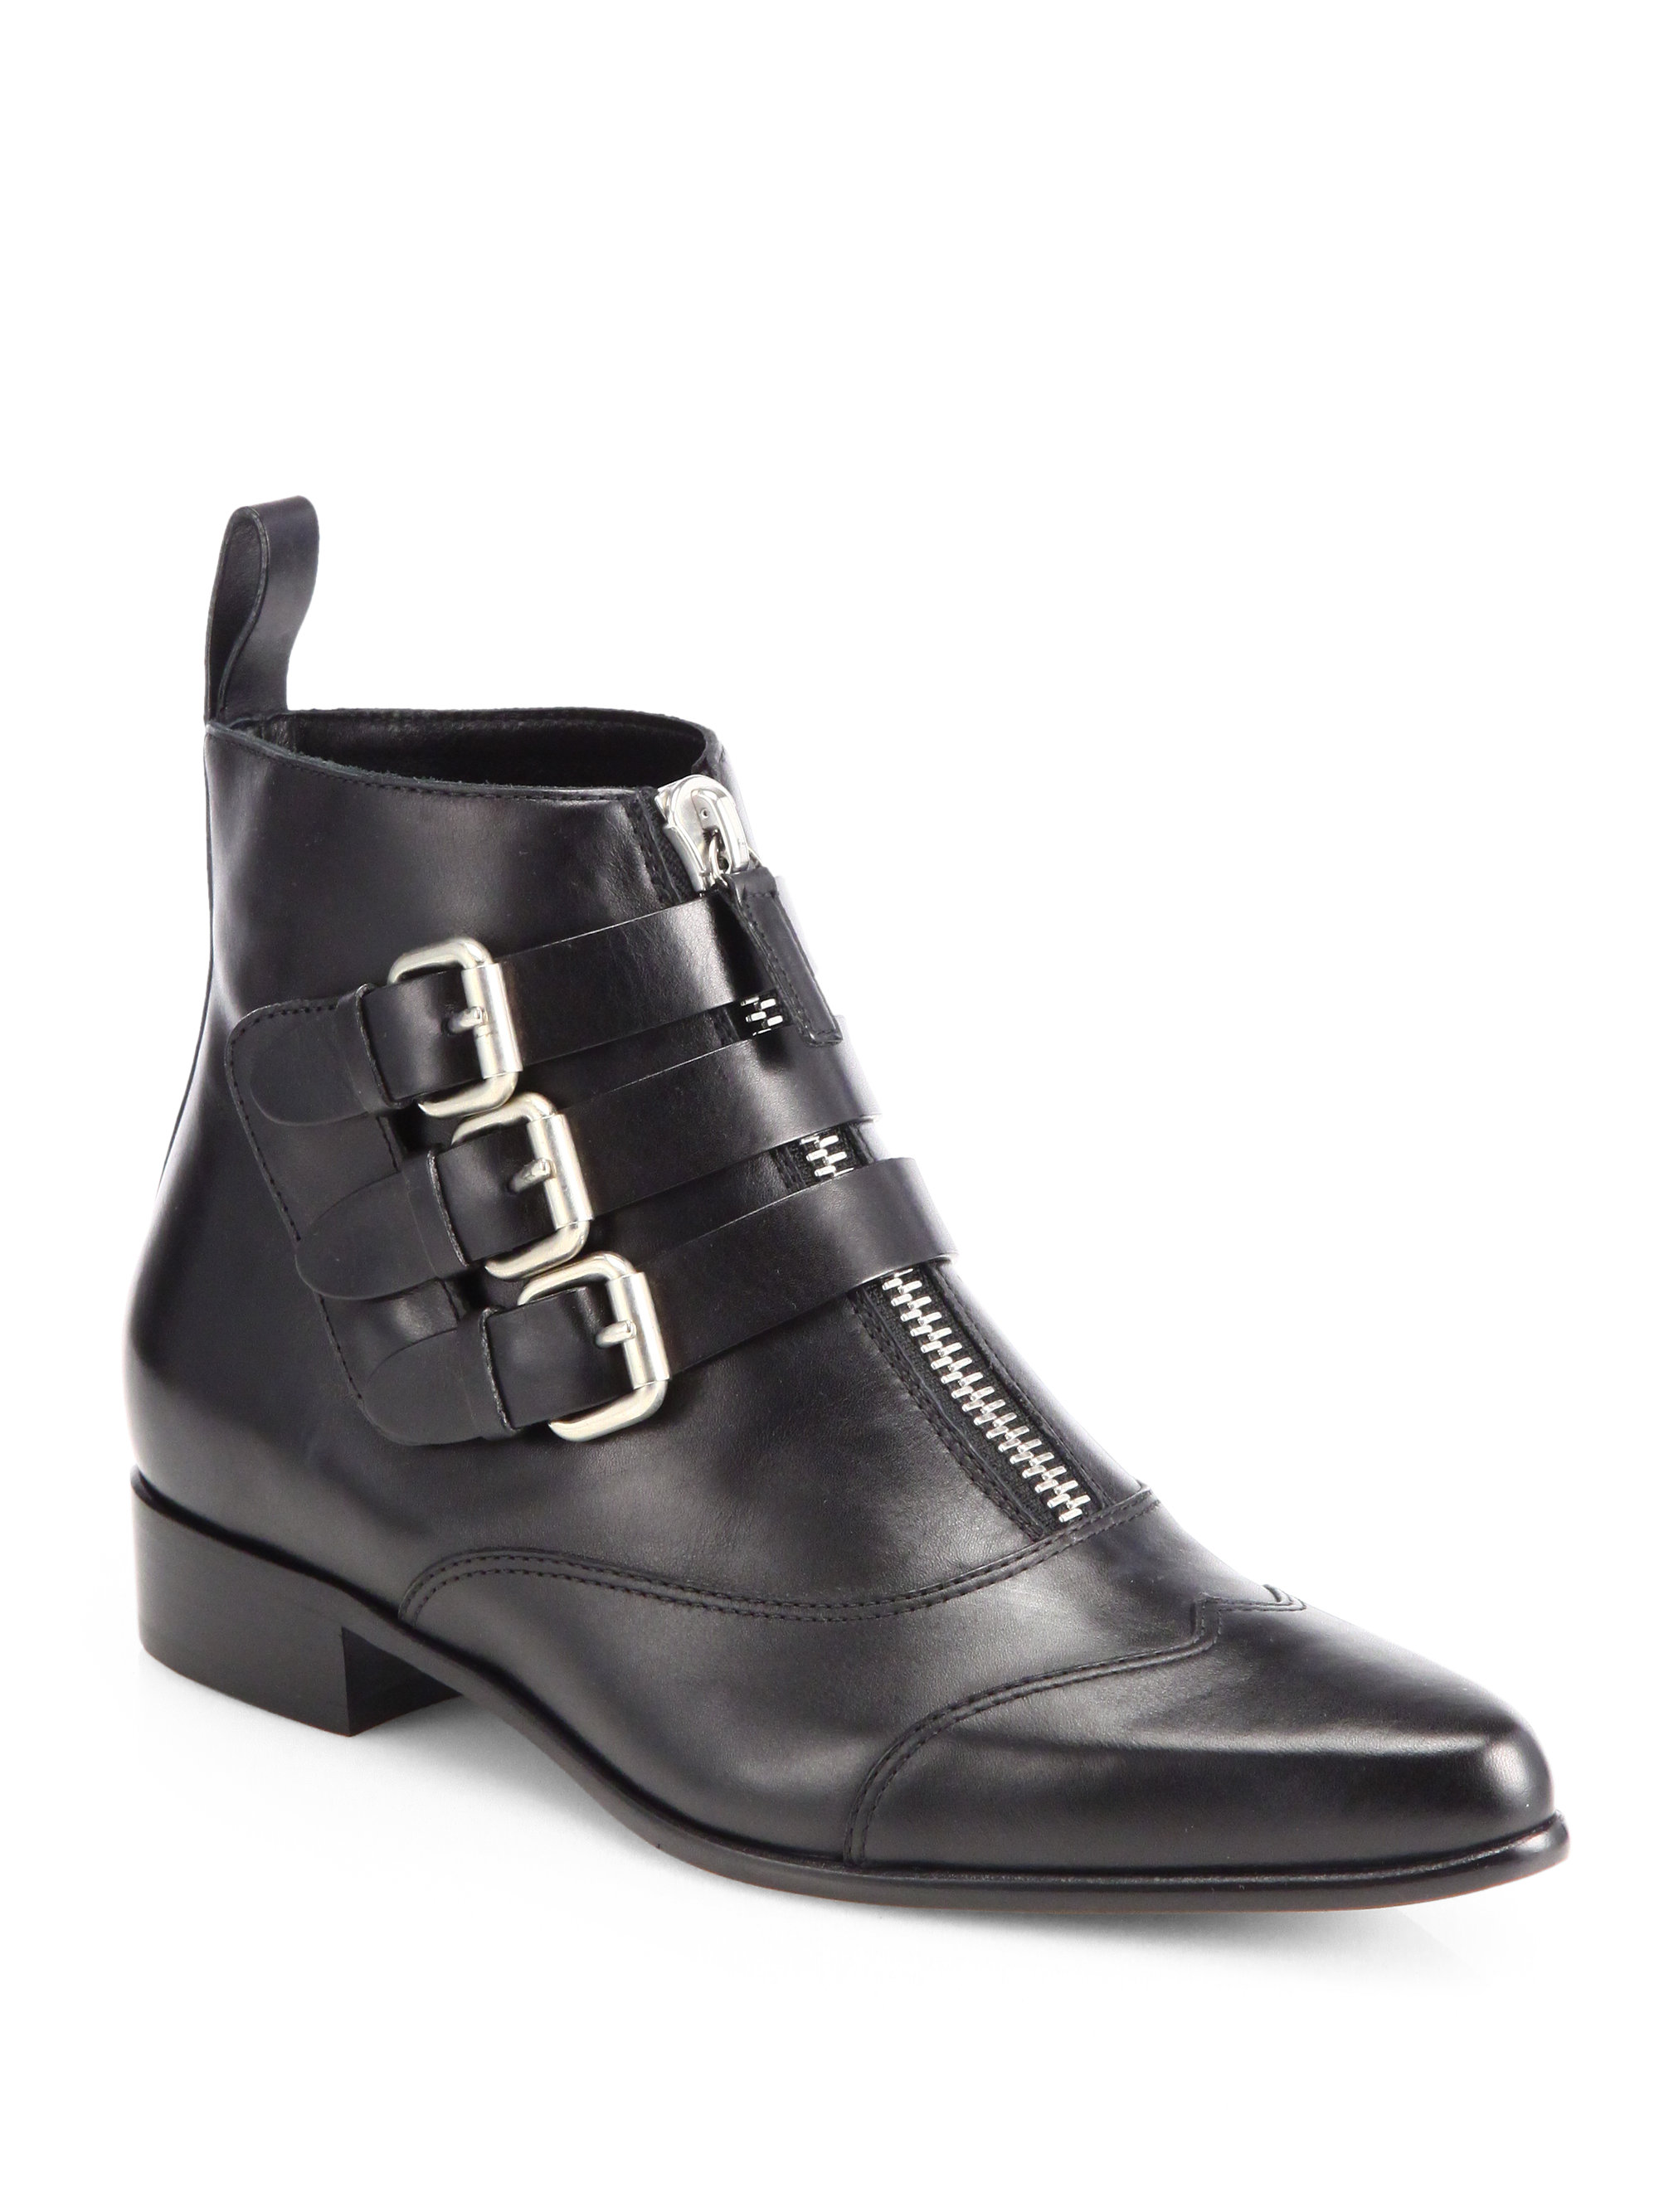 Tabitha Simmons Boots Cheap Browse Prices Online Free Shipping Low Shipping Fee Cheap With Credit Card Z1xJWr